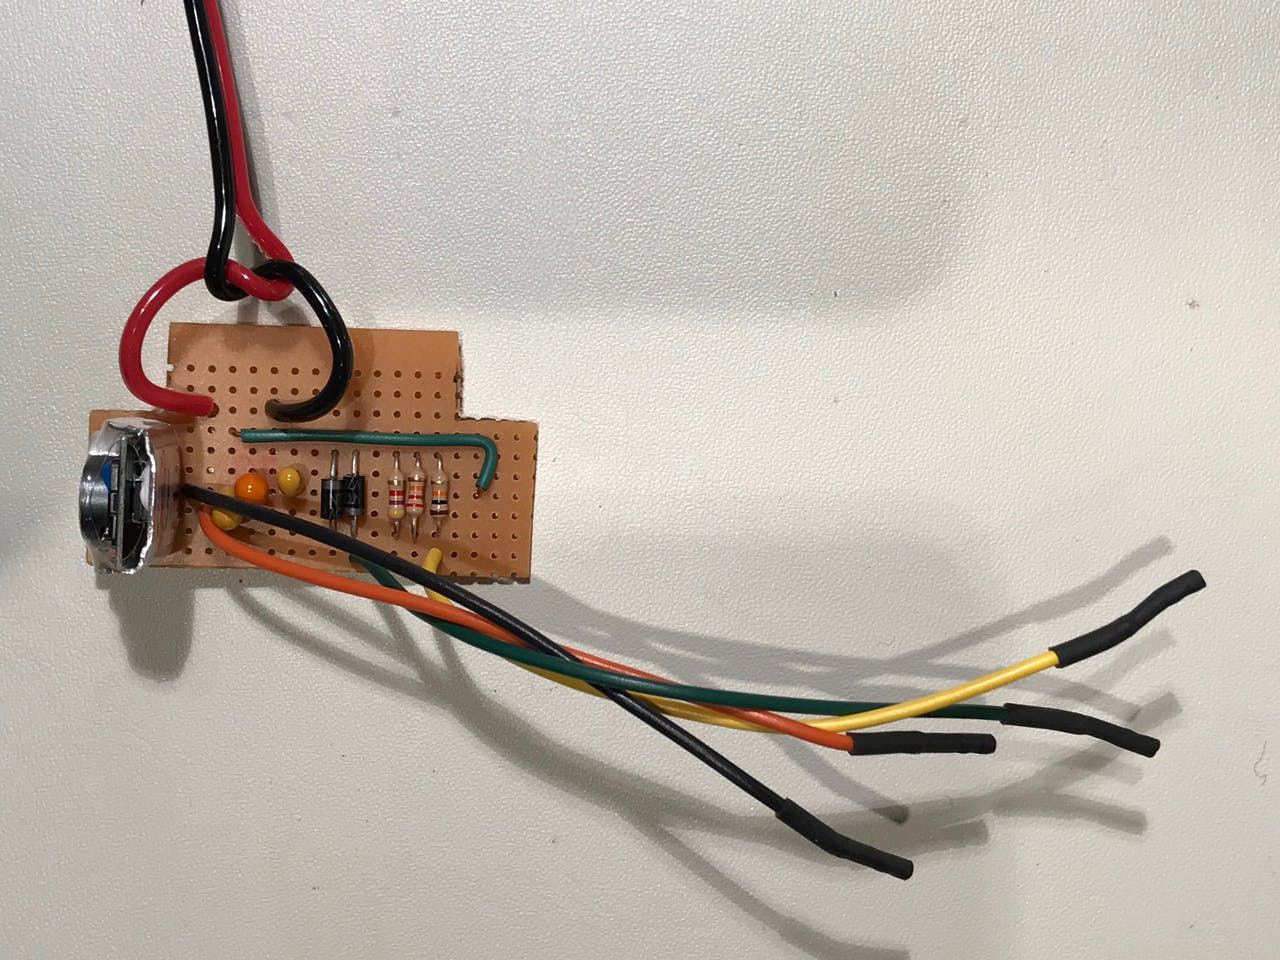 Mobile Life Iot Wire Leads To Provide Additional Functions Such As Powering Trailer